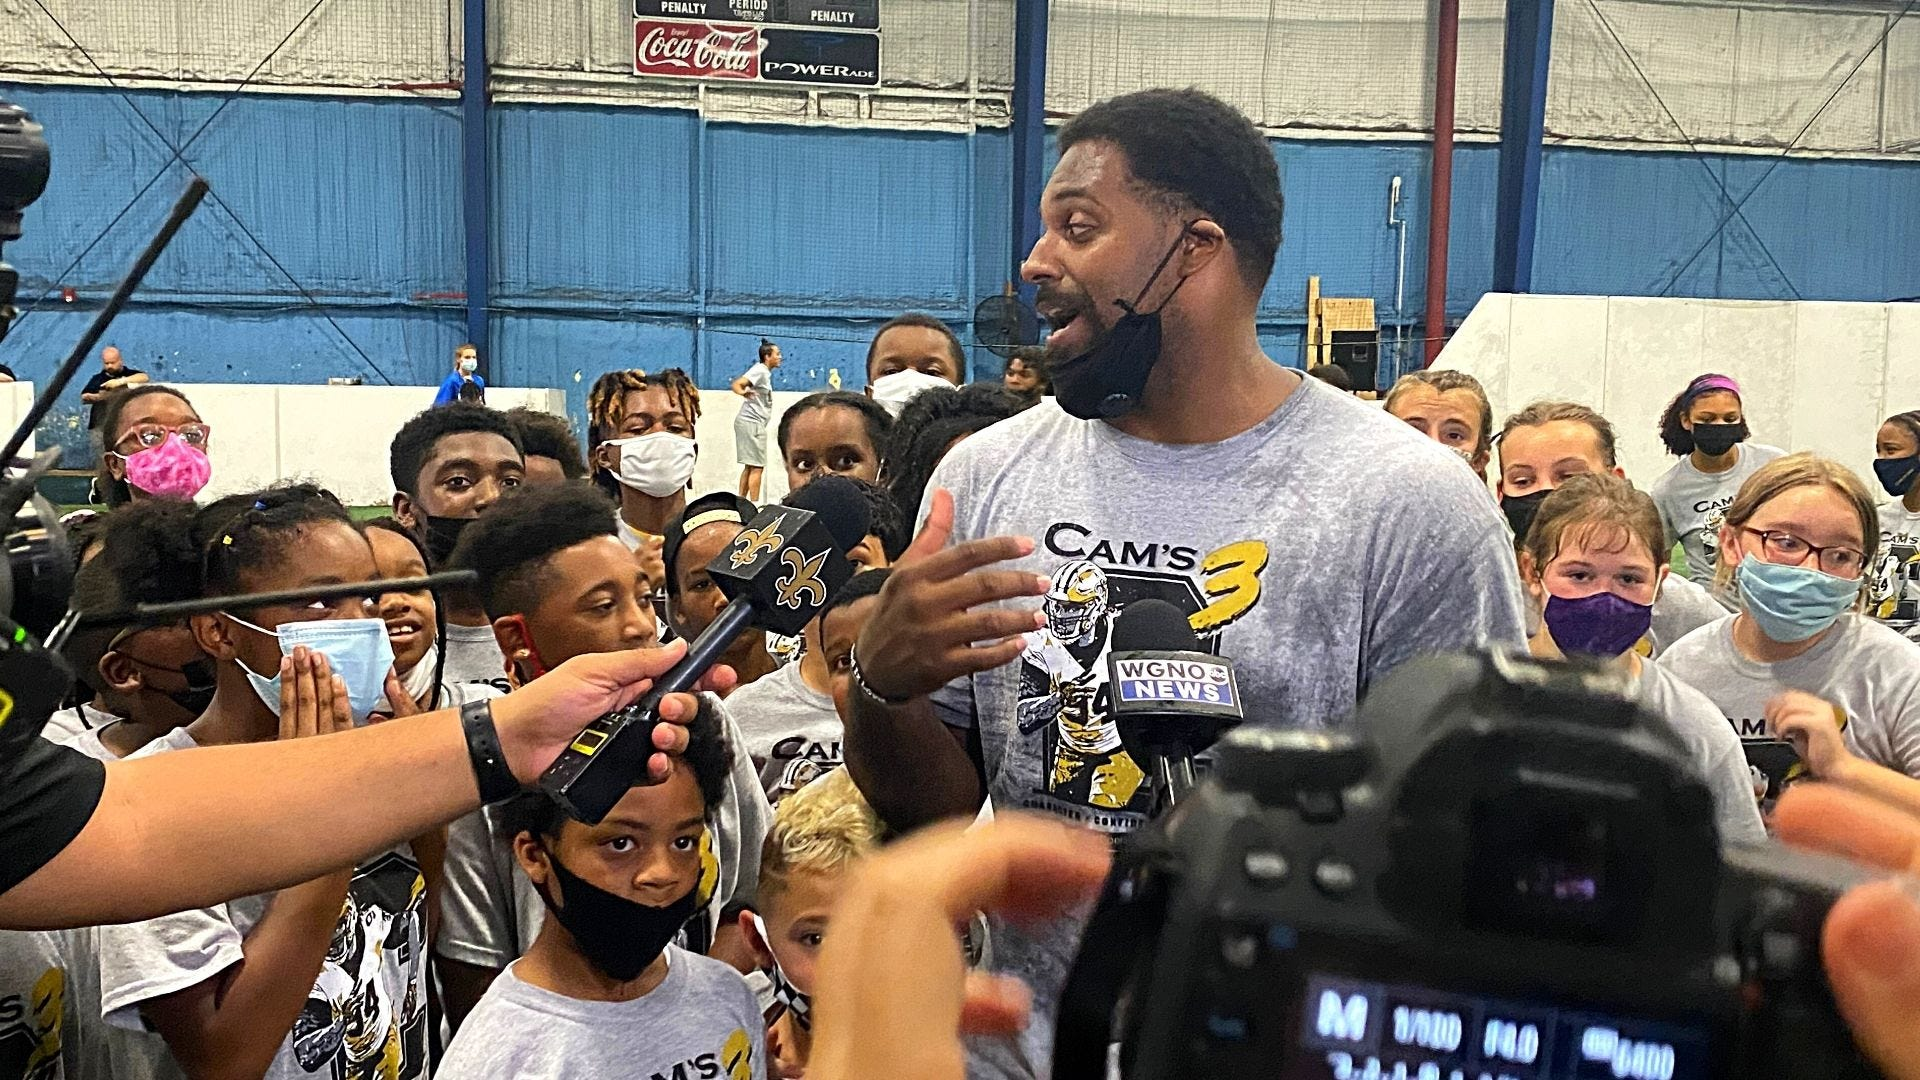 Scenes from Cam Jordan's youth camp: Football, dance breaks and Tank's debut